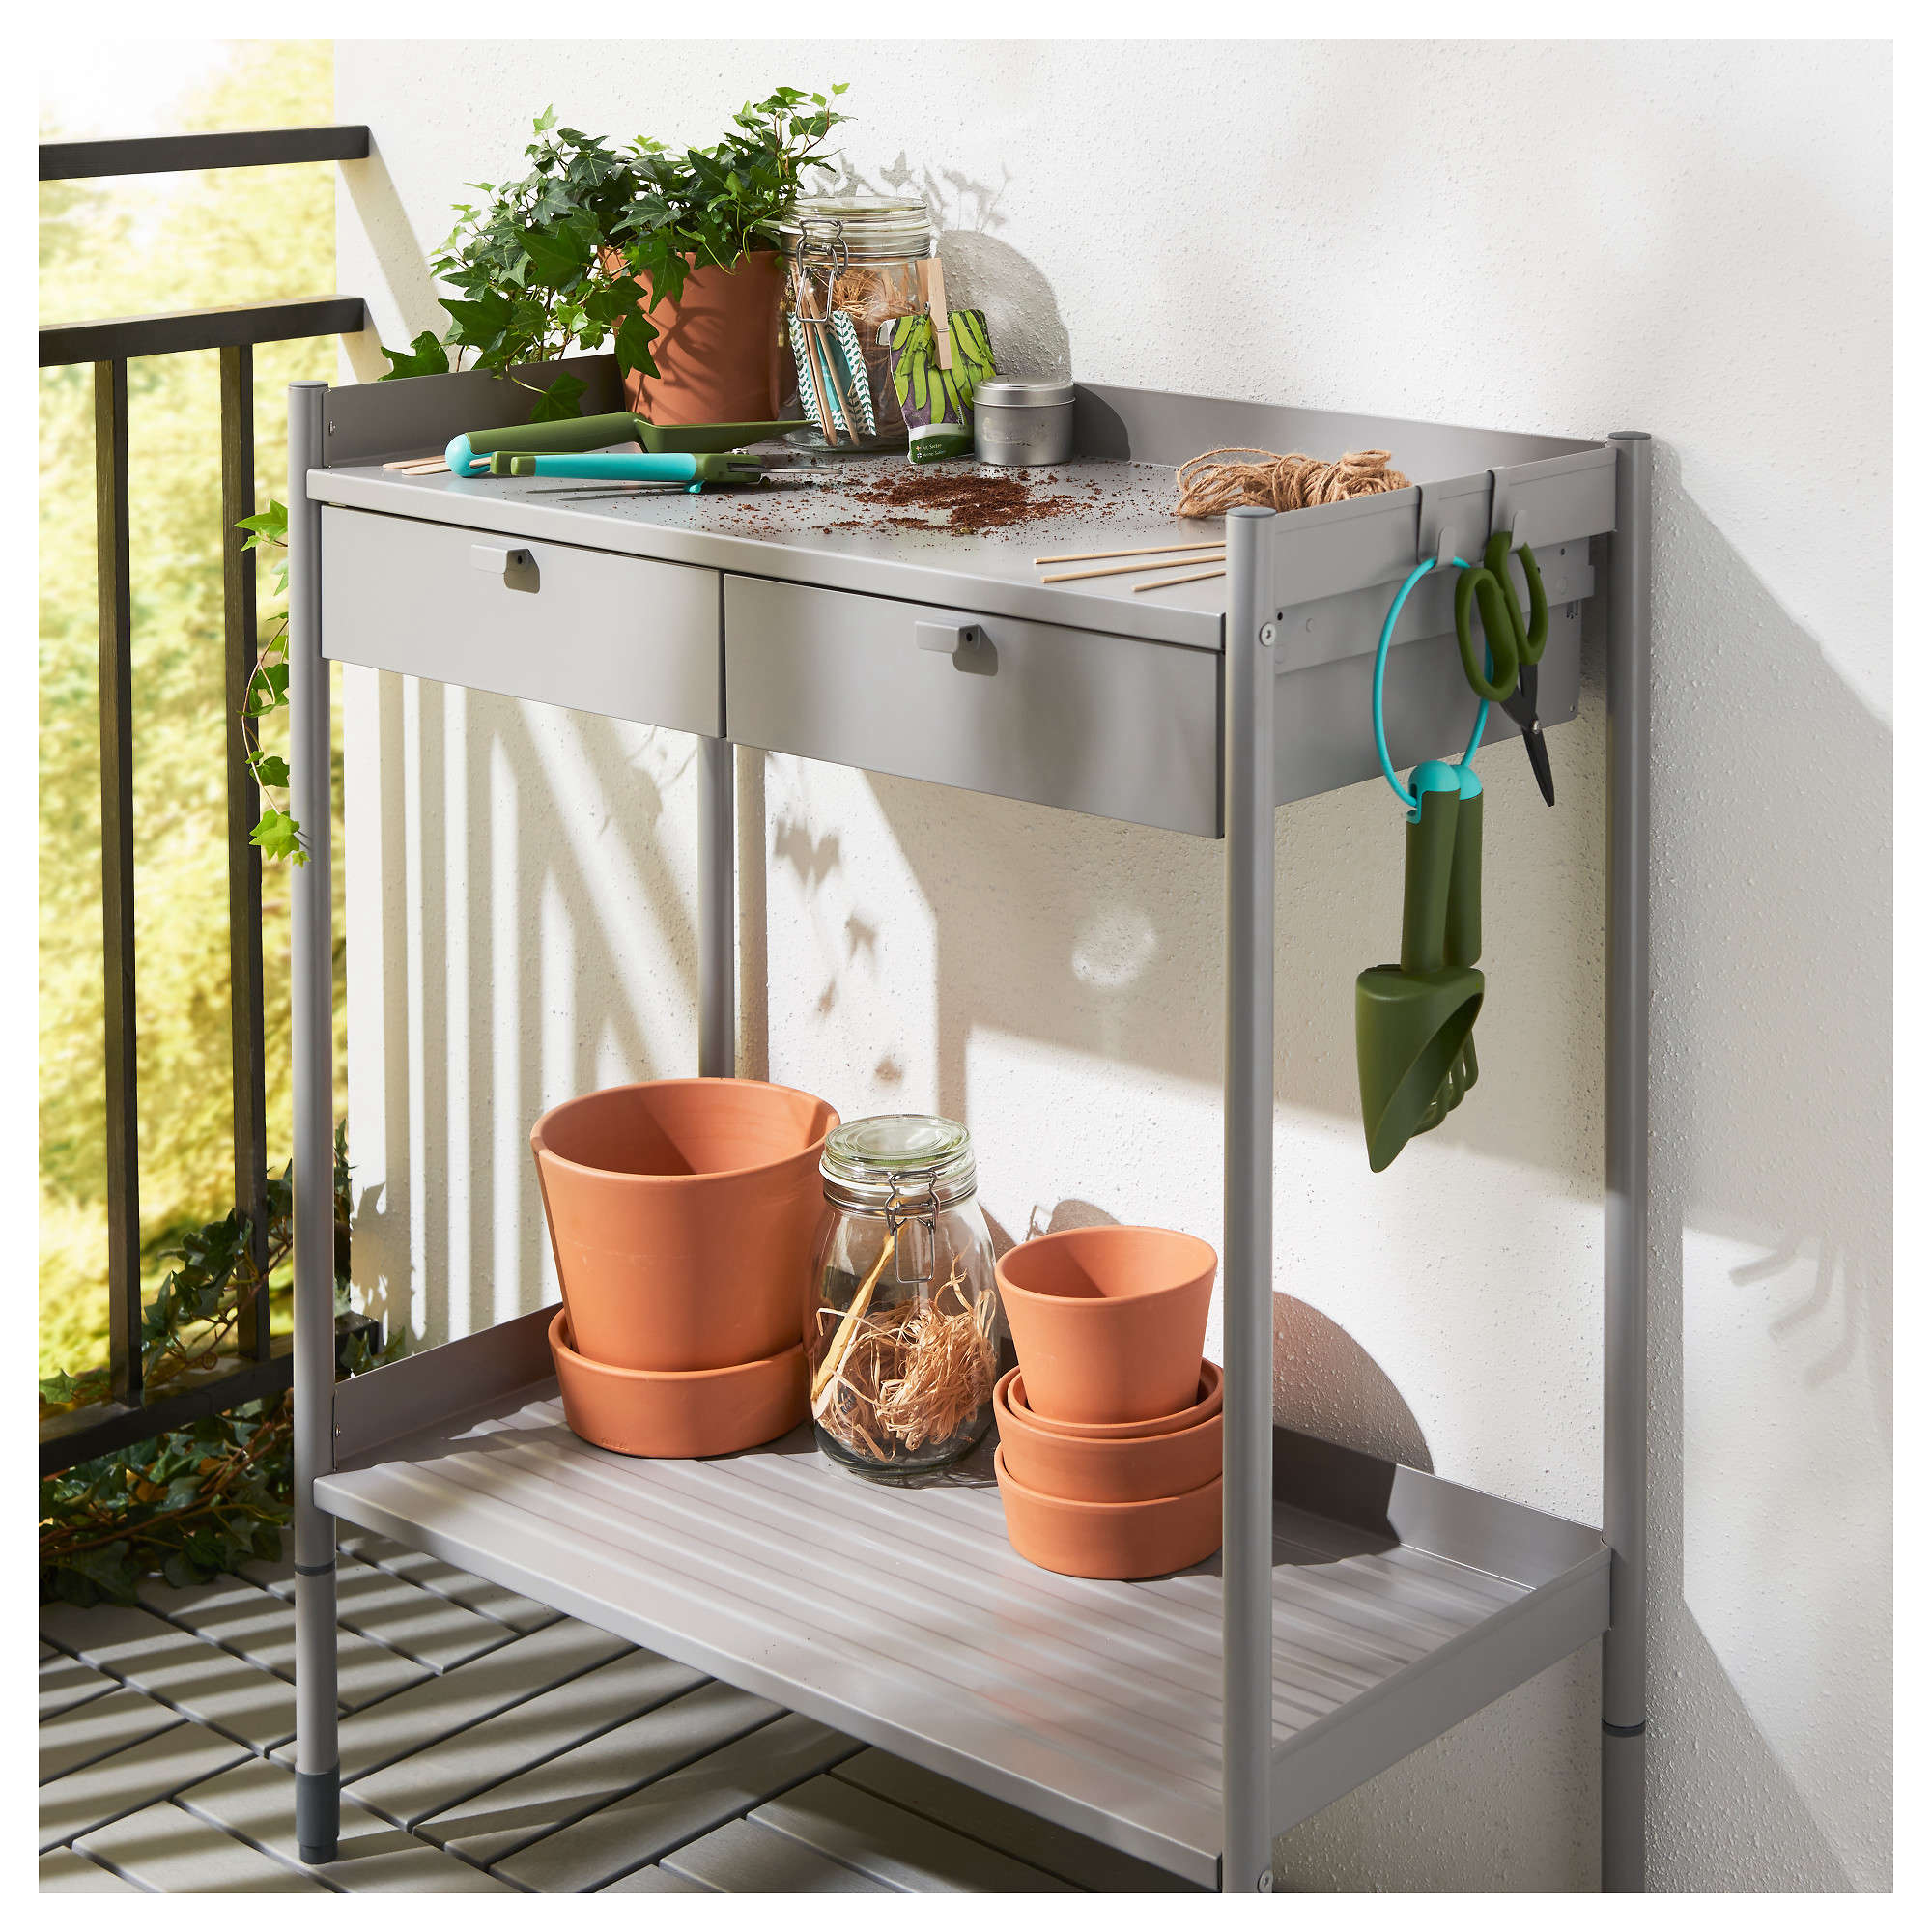 en storage plastic organising dark stackable furniture grey josef products shed included connection outdoor fittings ikea garden gb in cabinet sheds